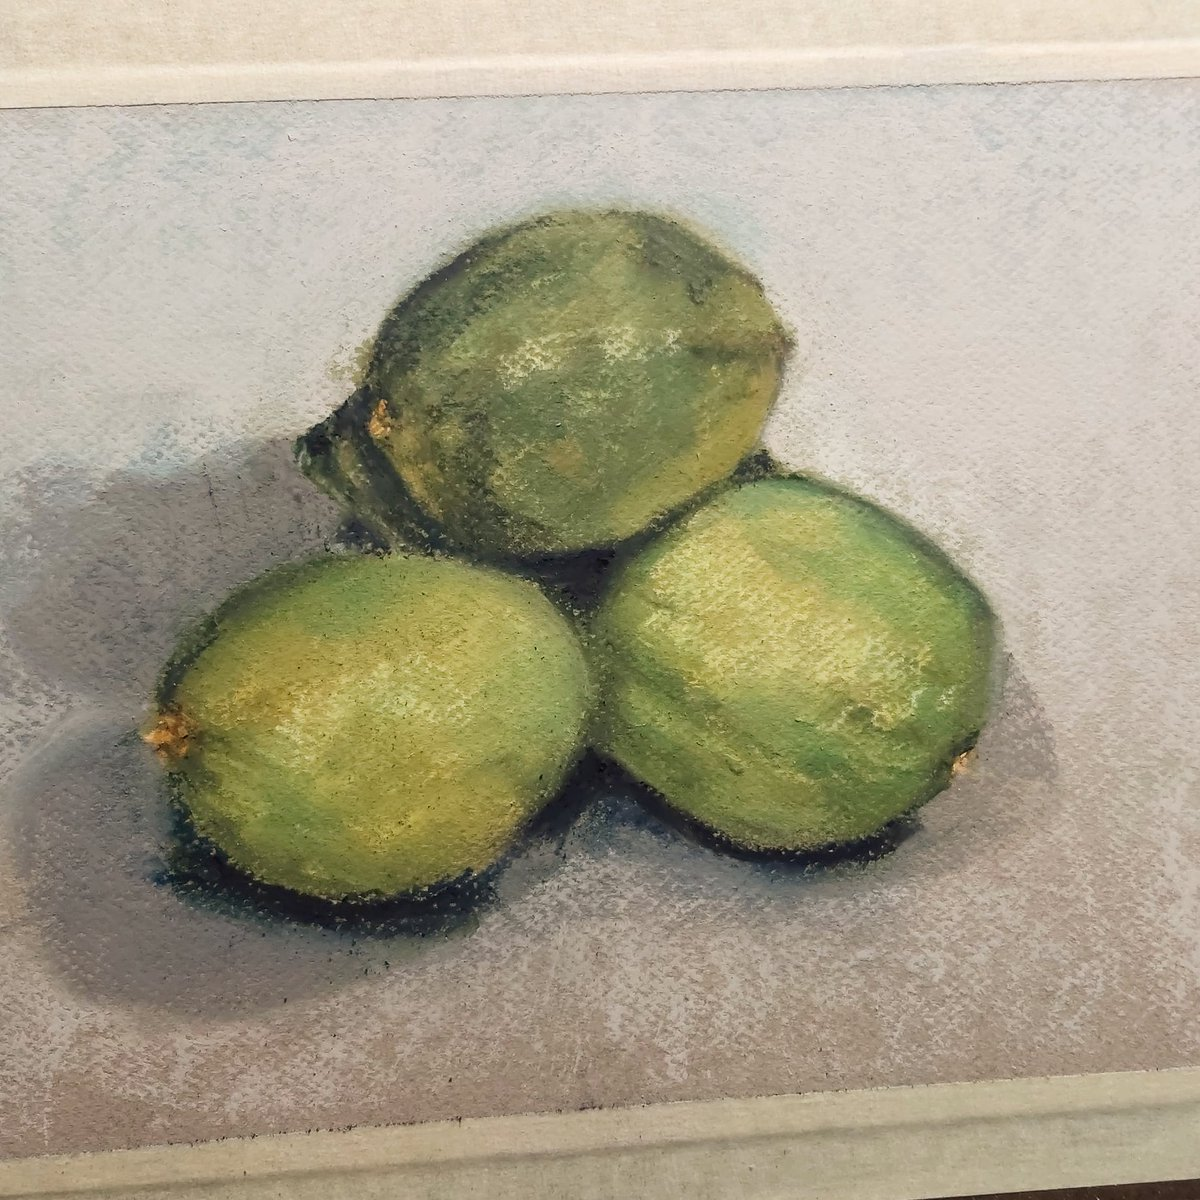 Today we have a few limes getting the #softpastel treatment  Please take a look at my #etsy store: http://etsy.com/shop/branhacker . #pastelpainters #pastelpainting #art #artwork #creative #sketchpainting #stilllife #stilllifepainting #foodpainting #paintingoftheday #artprintpic.twitter.com/XV3qsMOzSk